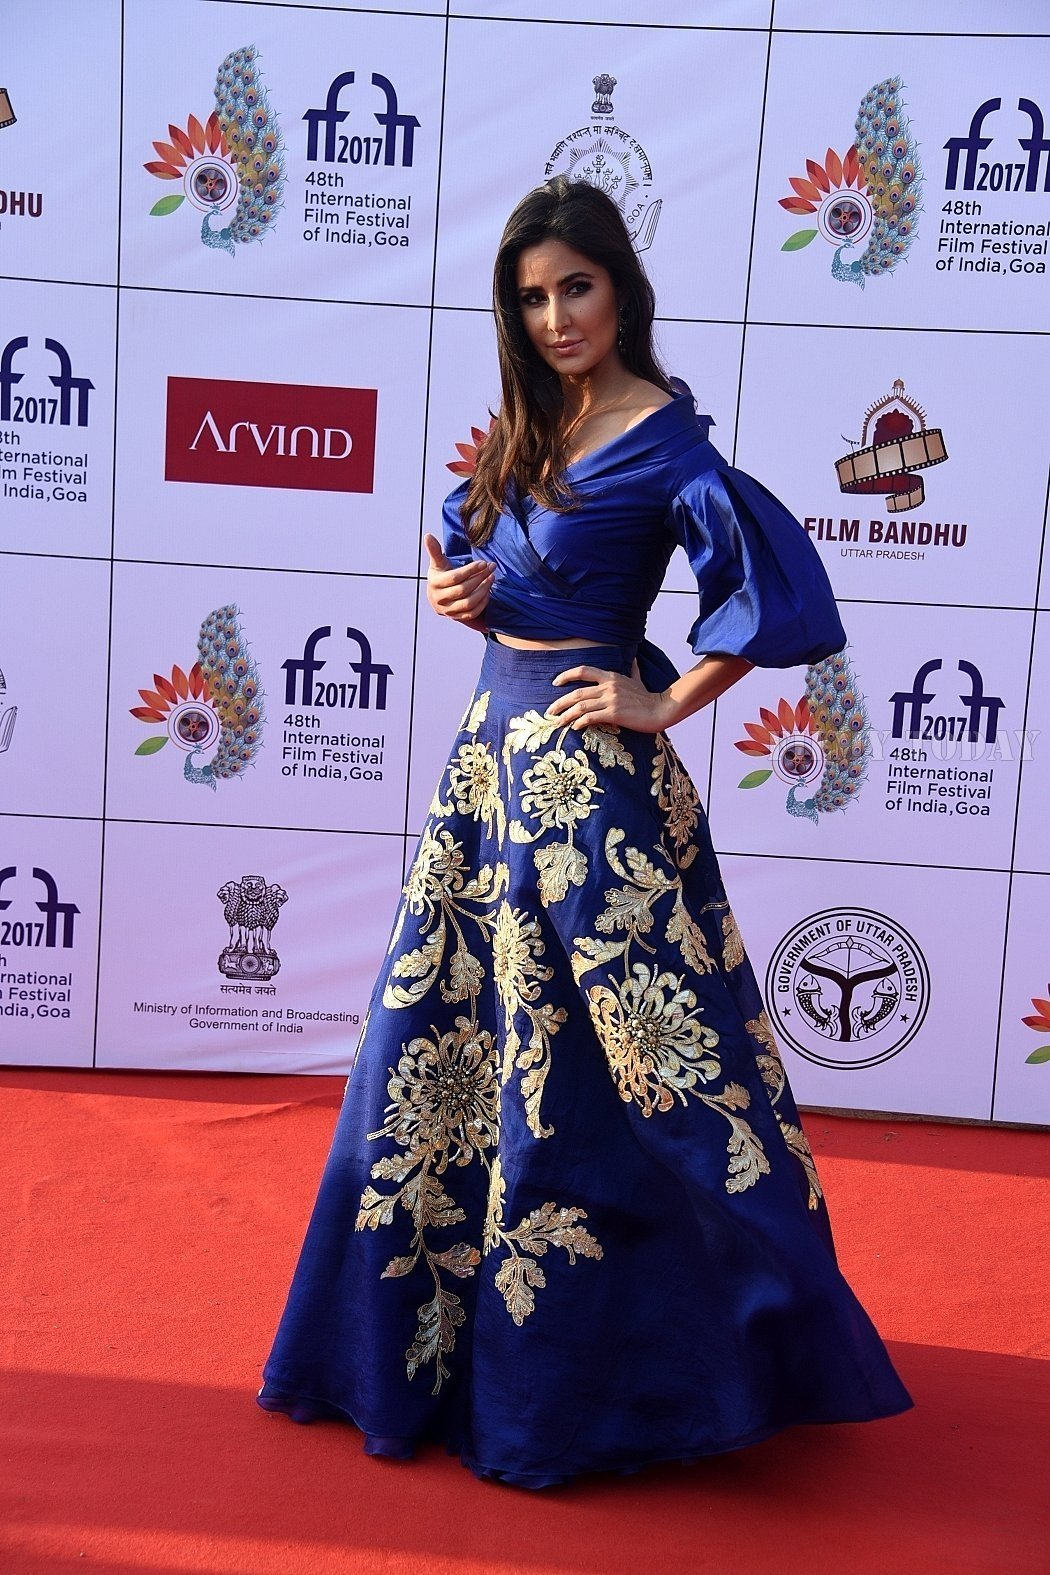 Katrina Kaif Shines in blue dress at 48th IFFI 2017 Closing Ceremony